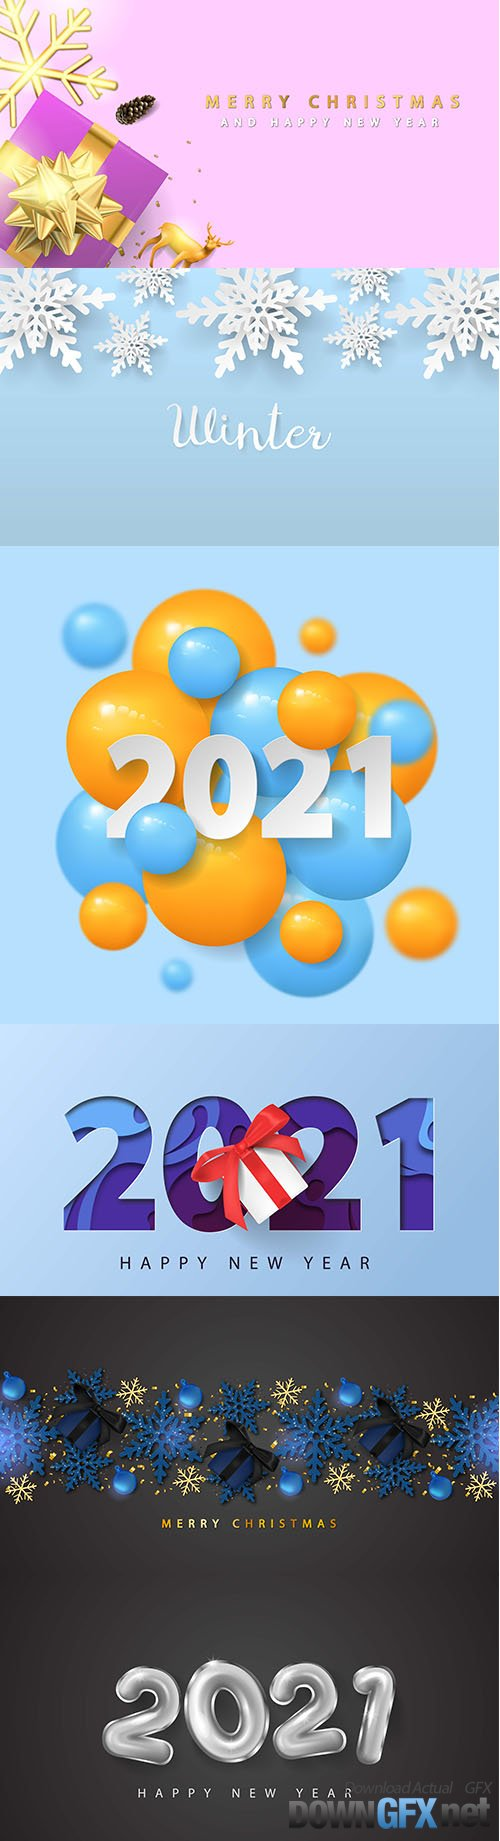 2021 happy new year with 3d papercut and giftbox background